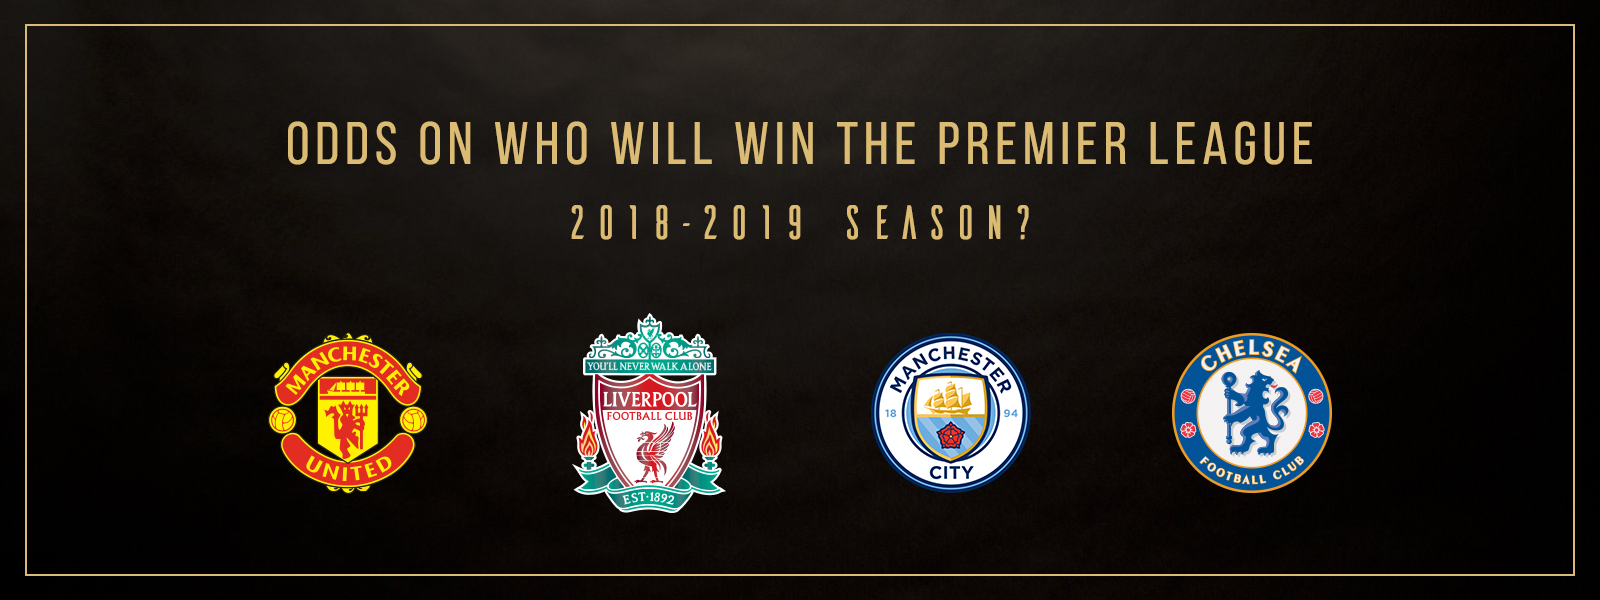 Odds On Who Will Win The Premier League 2018-2019 Season?